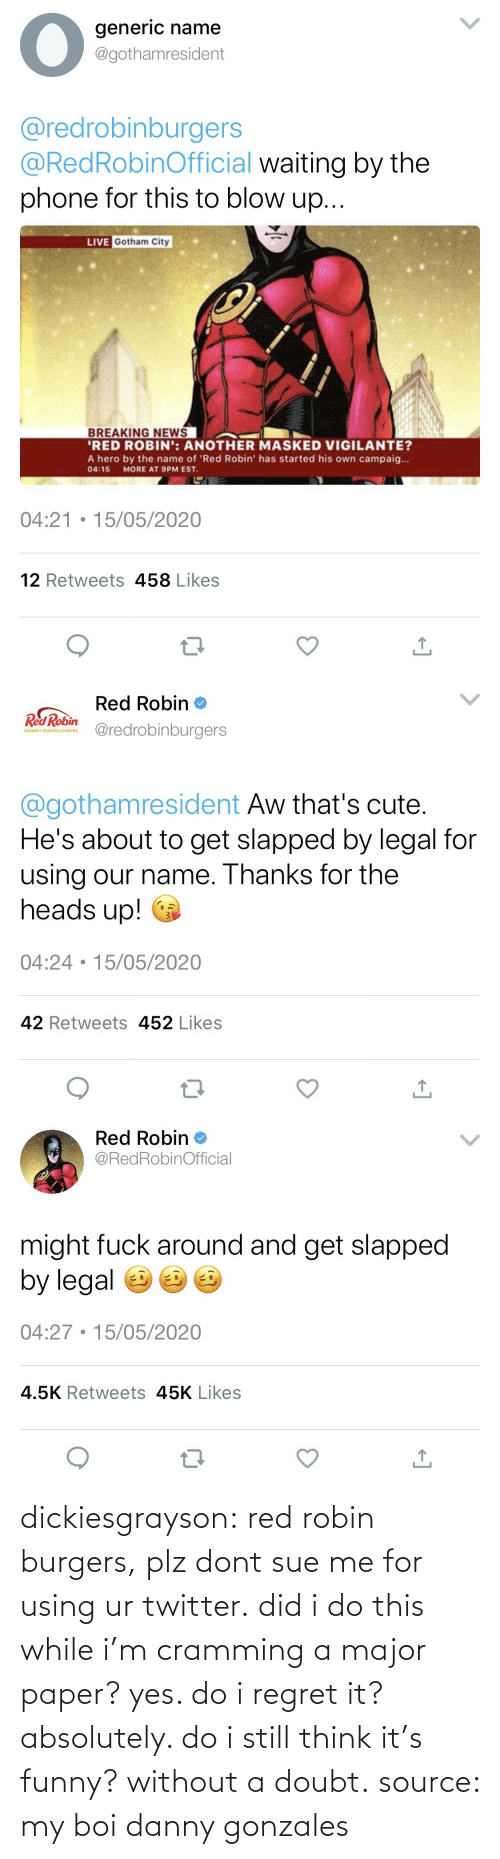 Without: dickiesgrayson:  red robin burgers, plz dont sue me for using ur twitter. did i do this while i'm cramming a major paper? yes. do i regret it? absolutely. do i still think it's funny? without a doubt. source: my boi danny gonzales